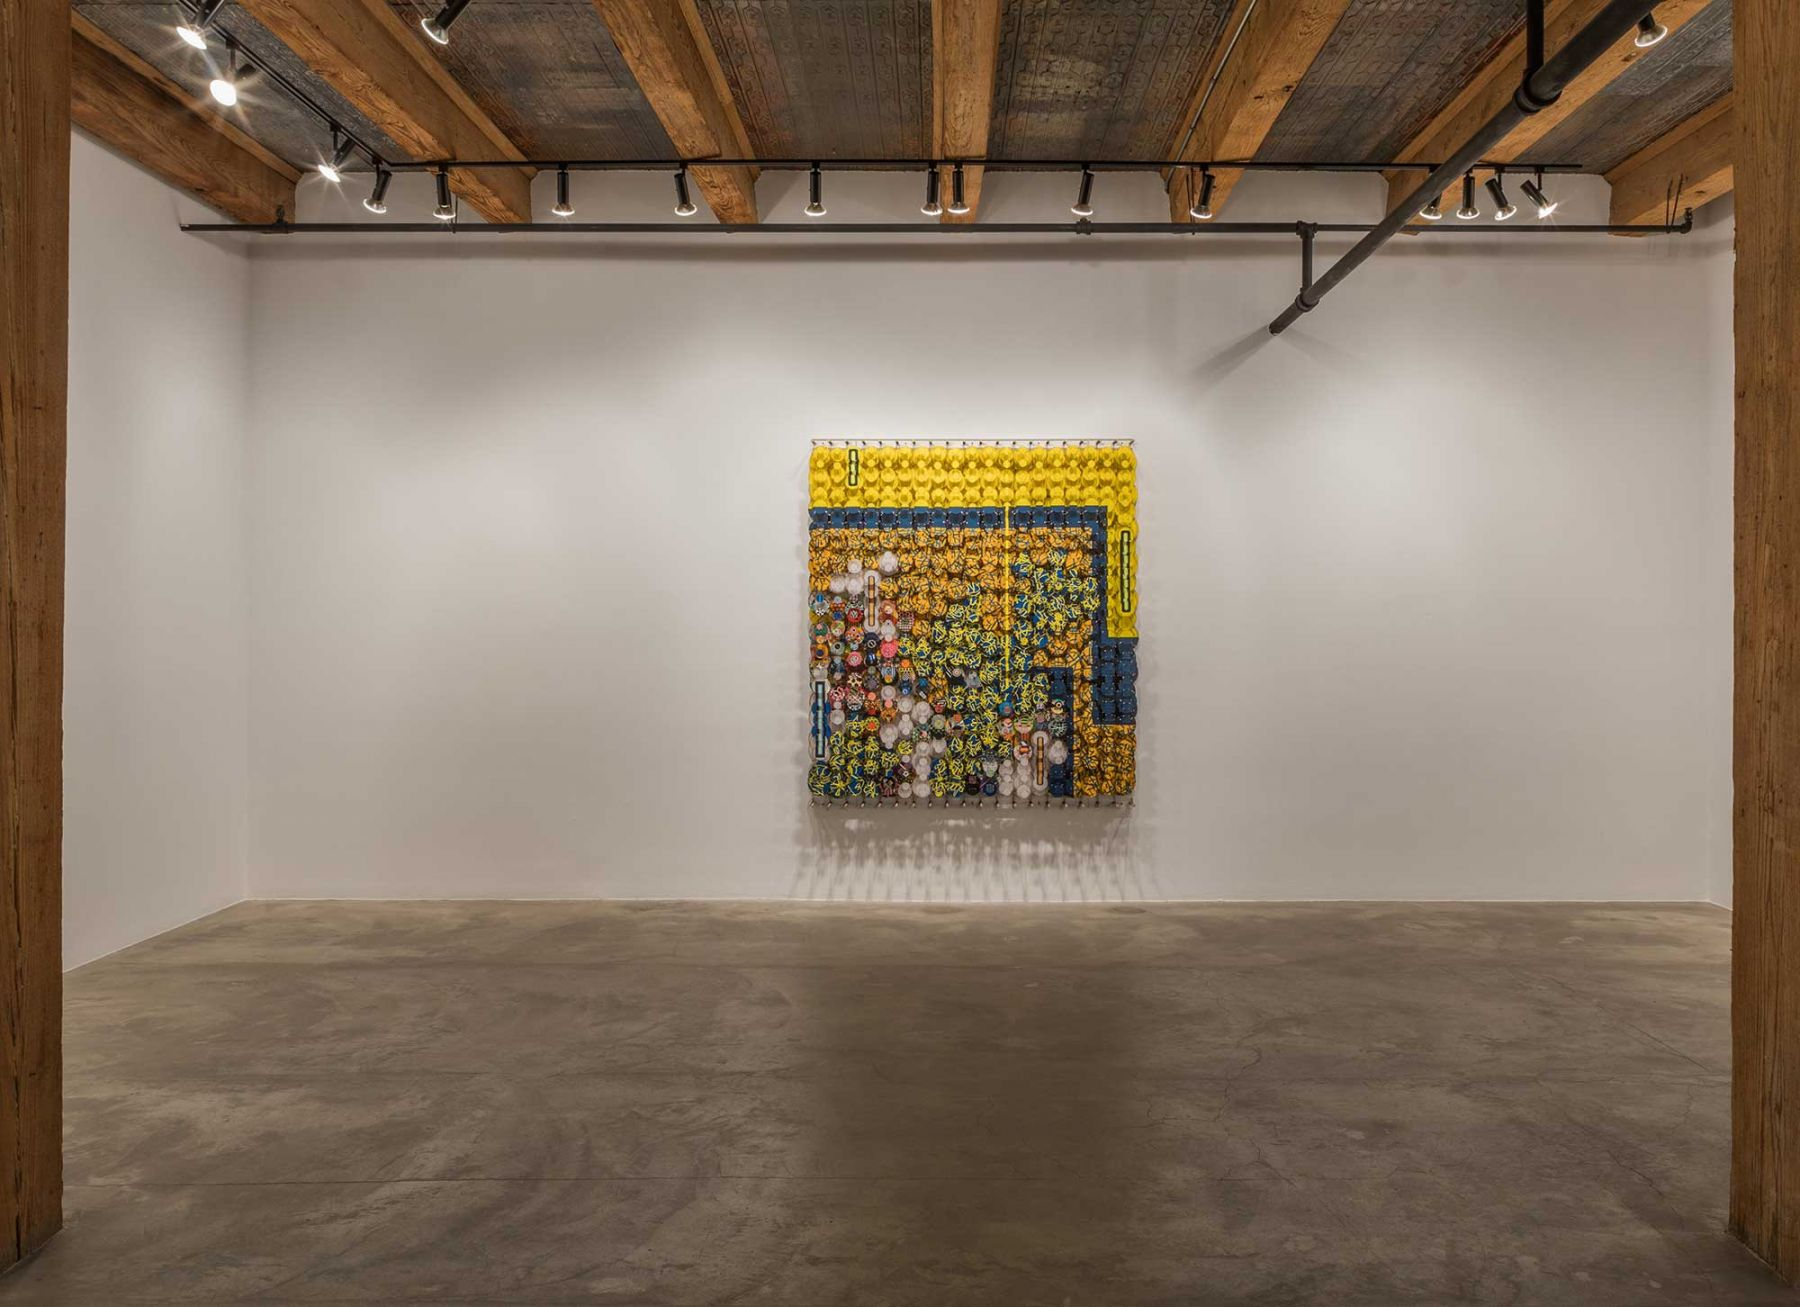 Installation view at Rhona Hoffman Gallery/Jacob Hashimoto/The Dark Isn't The Thing To Worry About/2017